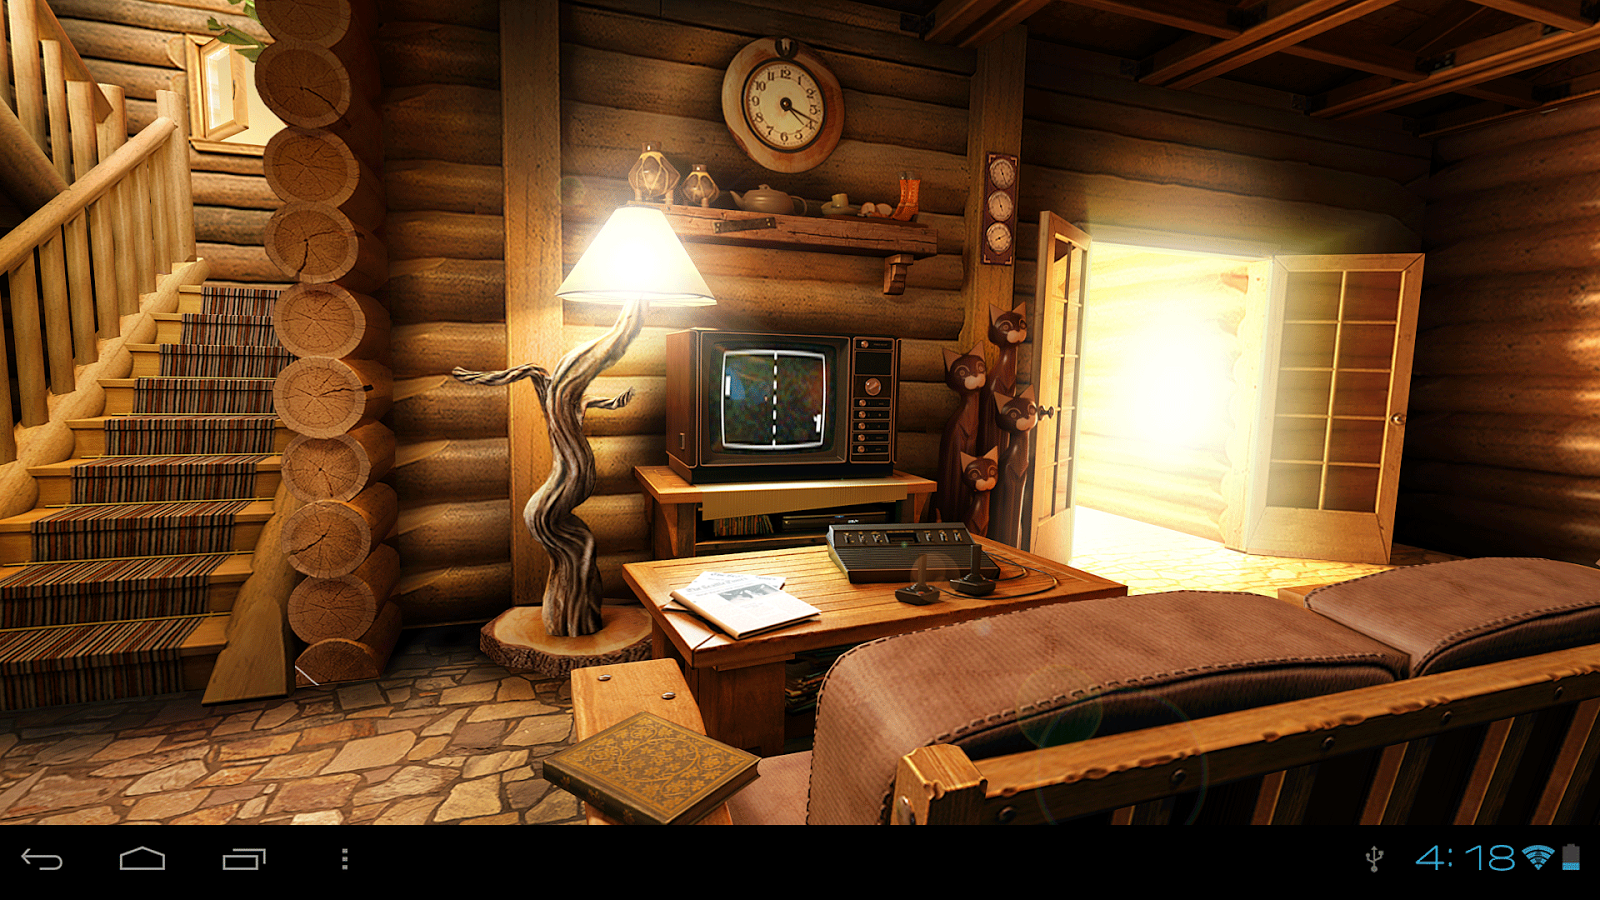 My log home 3d wallpaper free android apps on google play for 3d wallpaper for home singapore